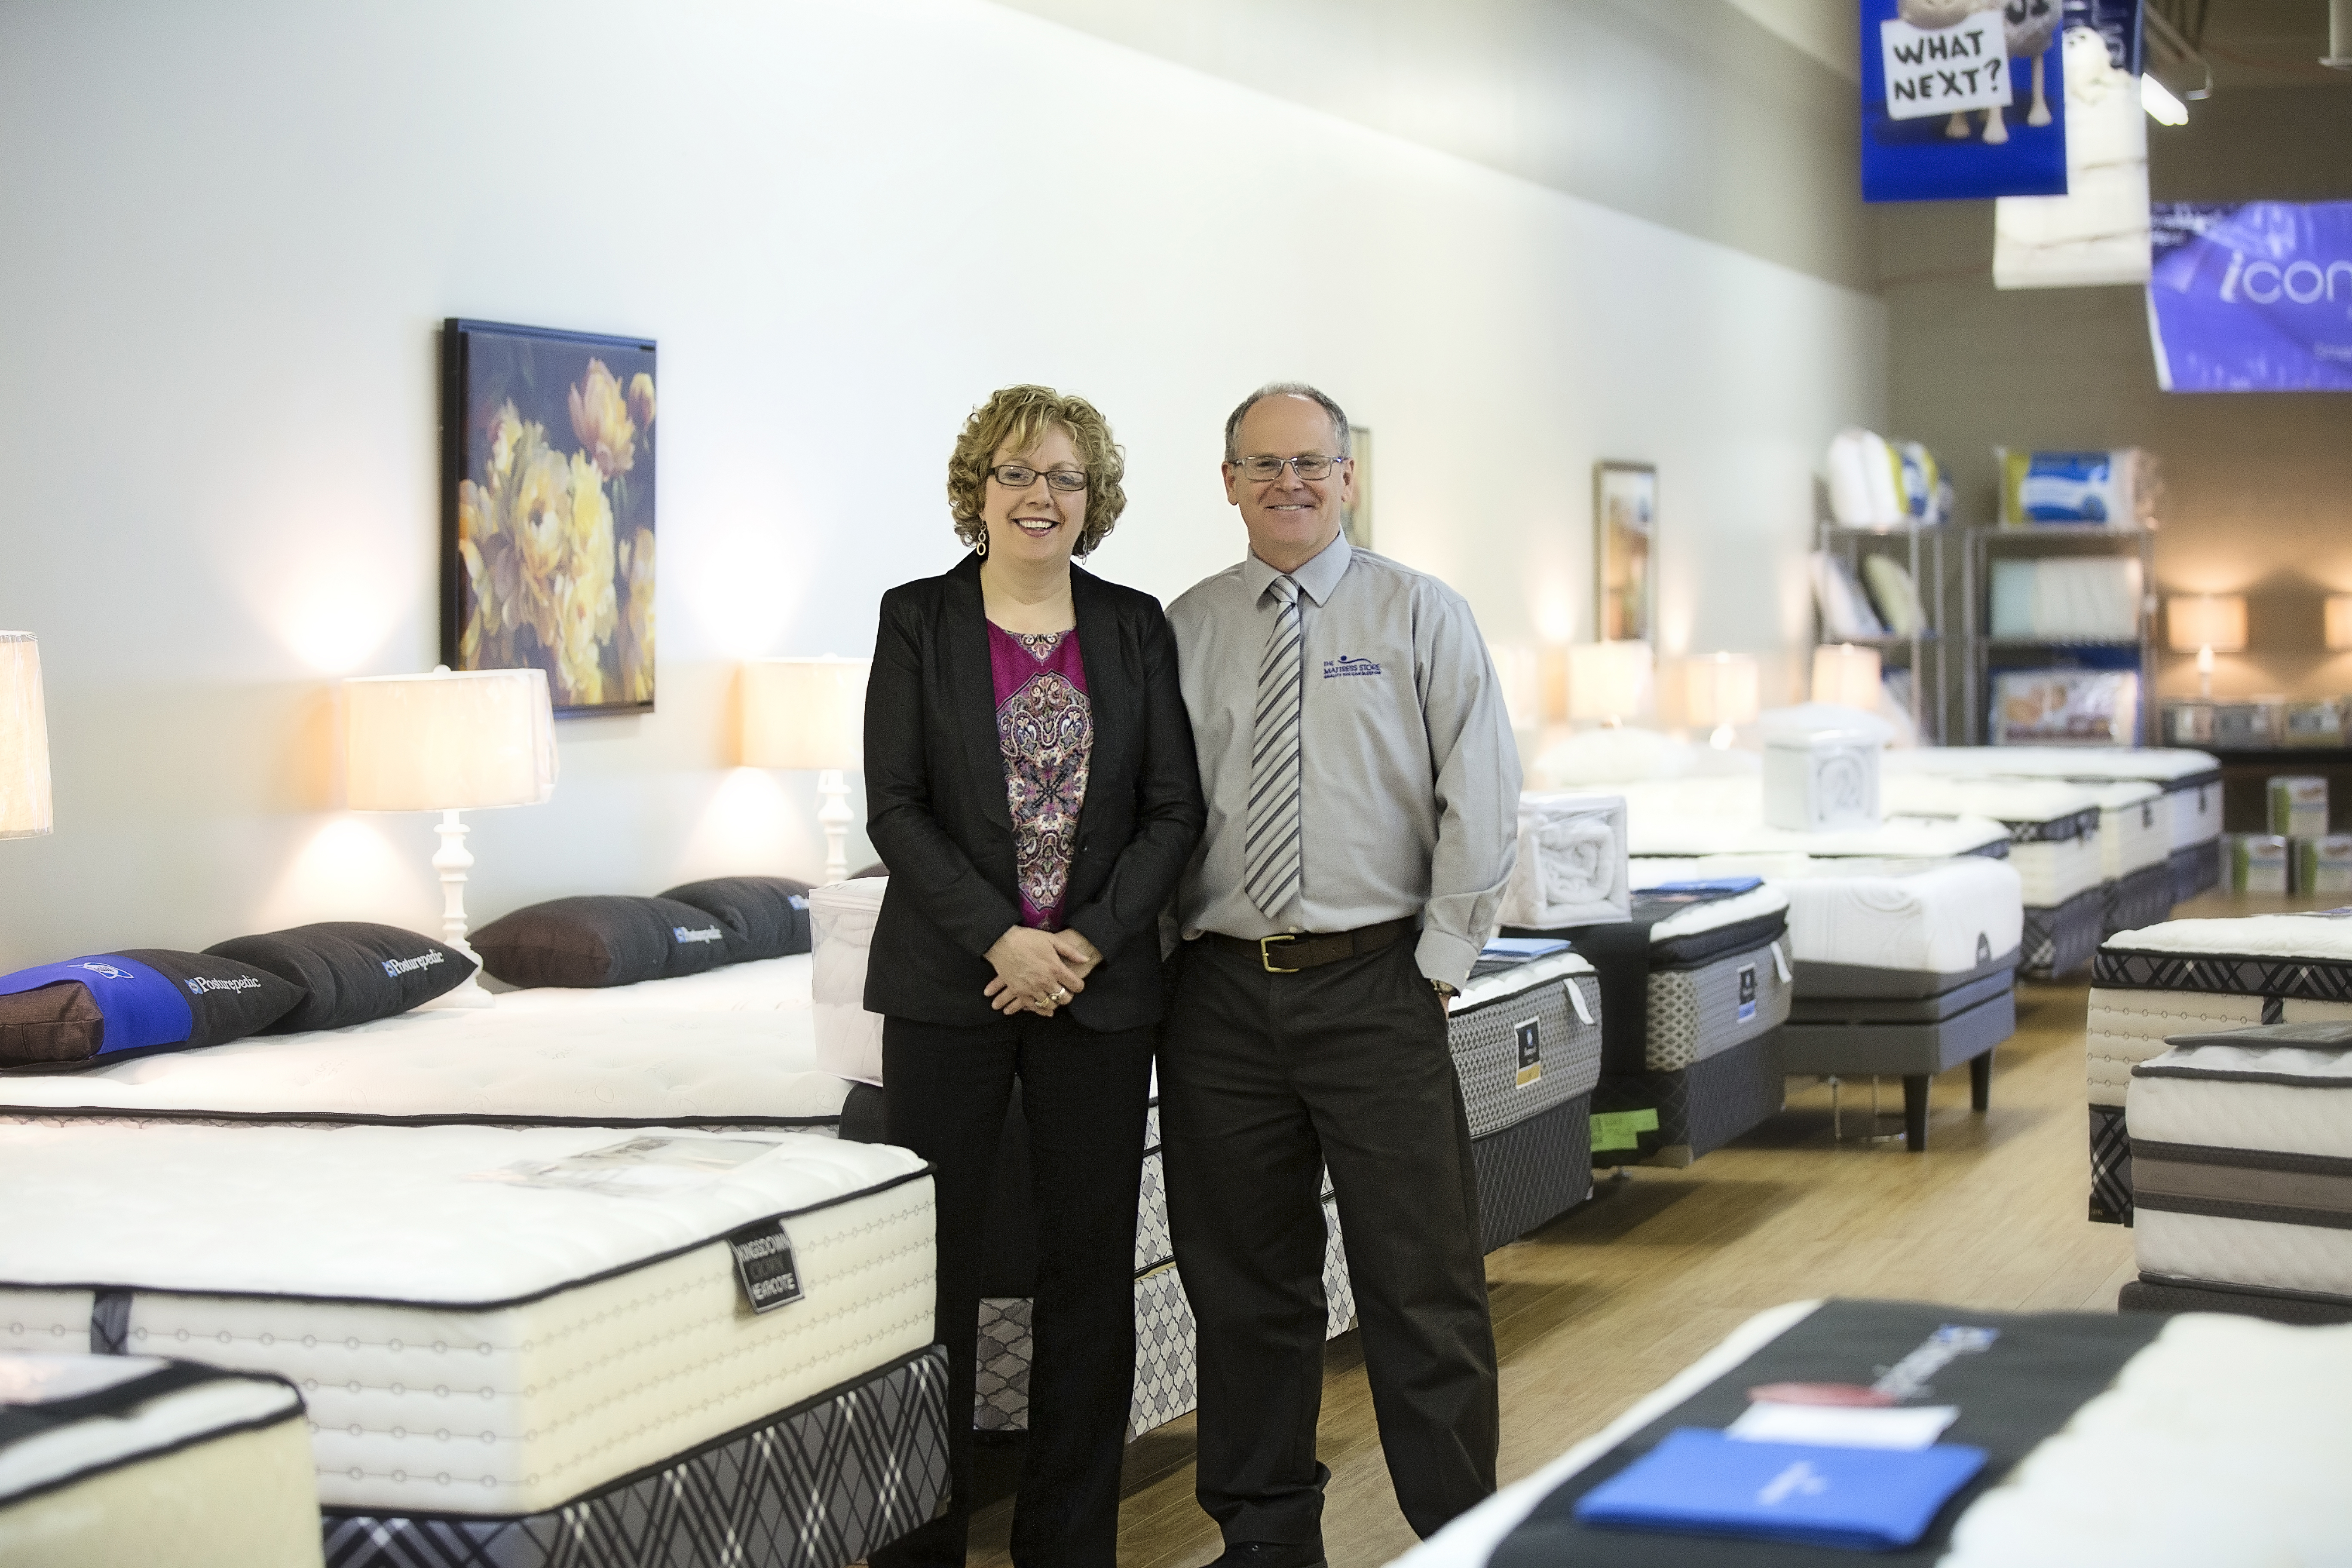 a off deal business saves box west consumers appointment revolutionary model factory name big with blog to retailers columbia brand mattress the without carolina clearance by south sc store having stores